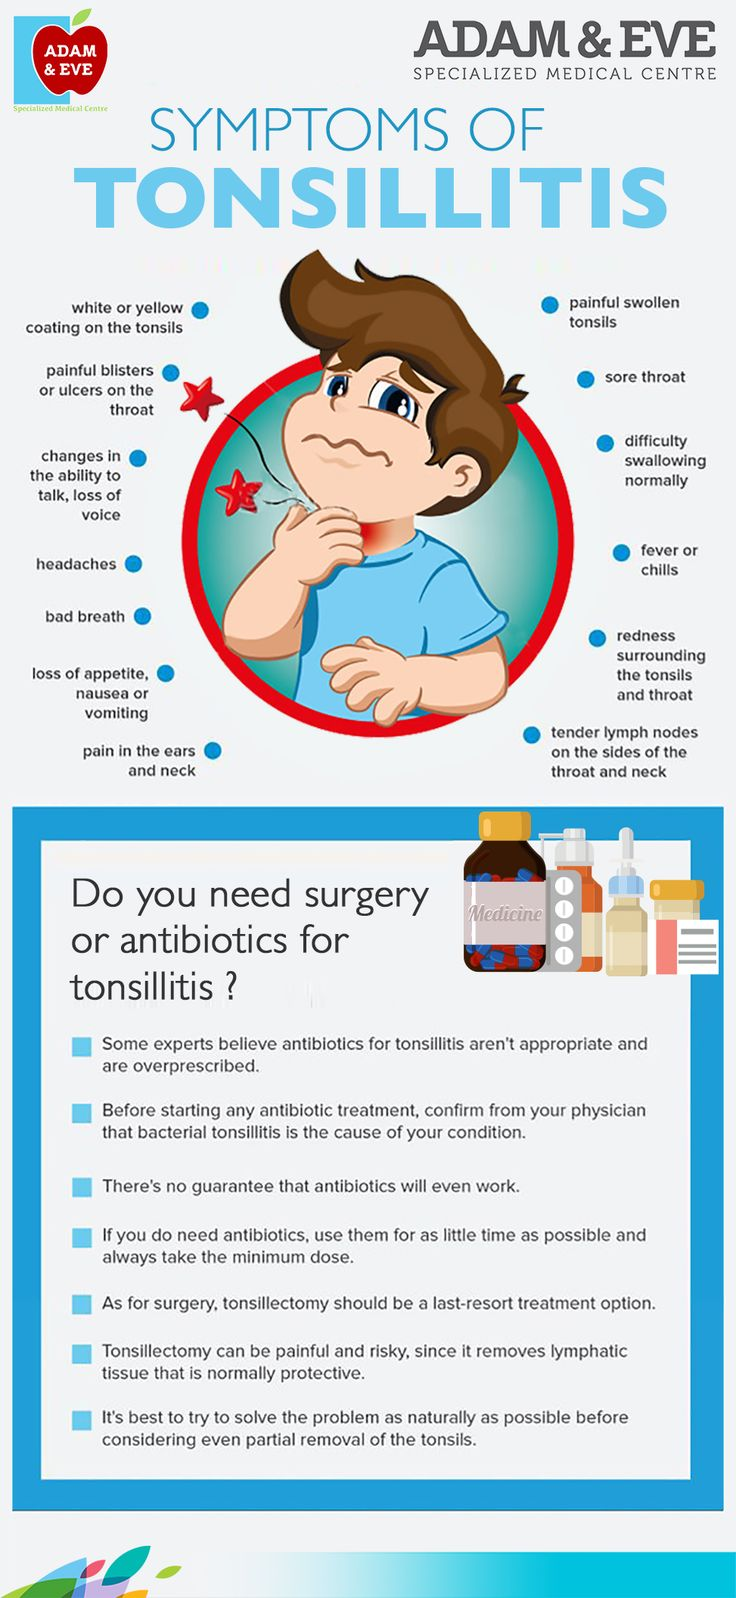 symptoms of tonsillitis#tonsillitis  #throatinfection  #throat  #entspecialist  #throatpain    ADAM & EVE Specialized Medical Centre Near Royal Rose Hotel Pink Building (501) Electra Street, Abu Dhabi, UAE     Contact Us : +971 2 676 7366 / +971 52 1555 366 / 055  1555366    Email : info@aesmc.com  visit us - http://aesmc.com